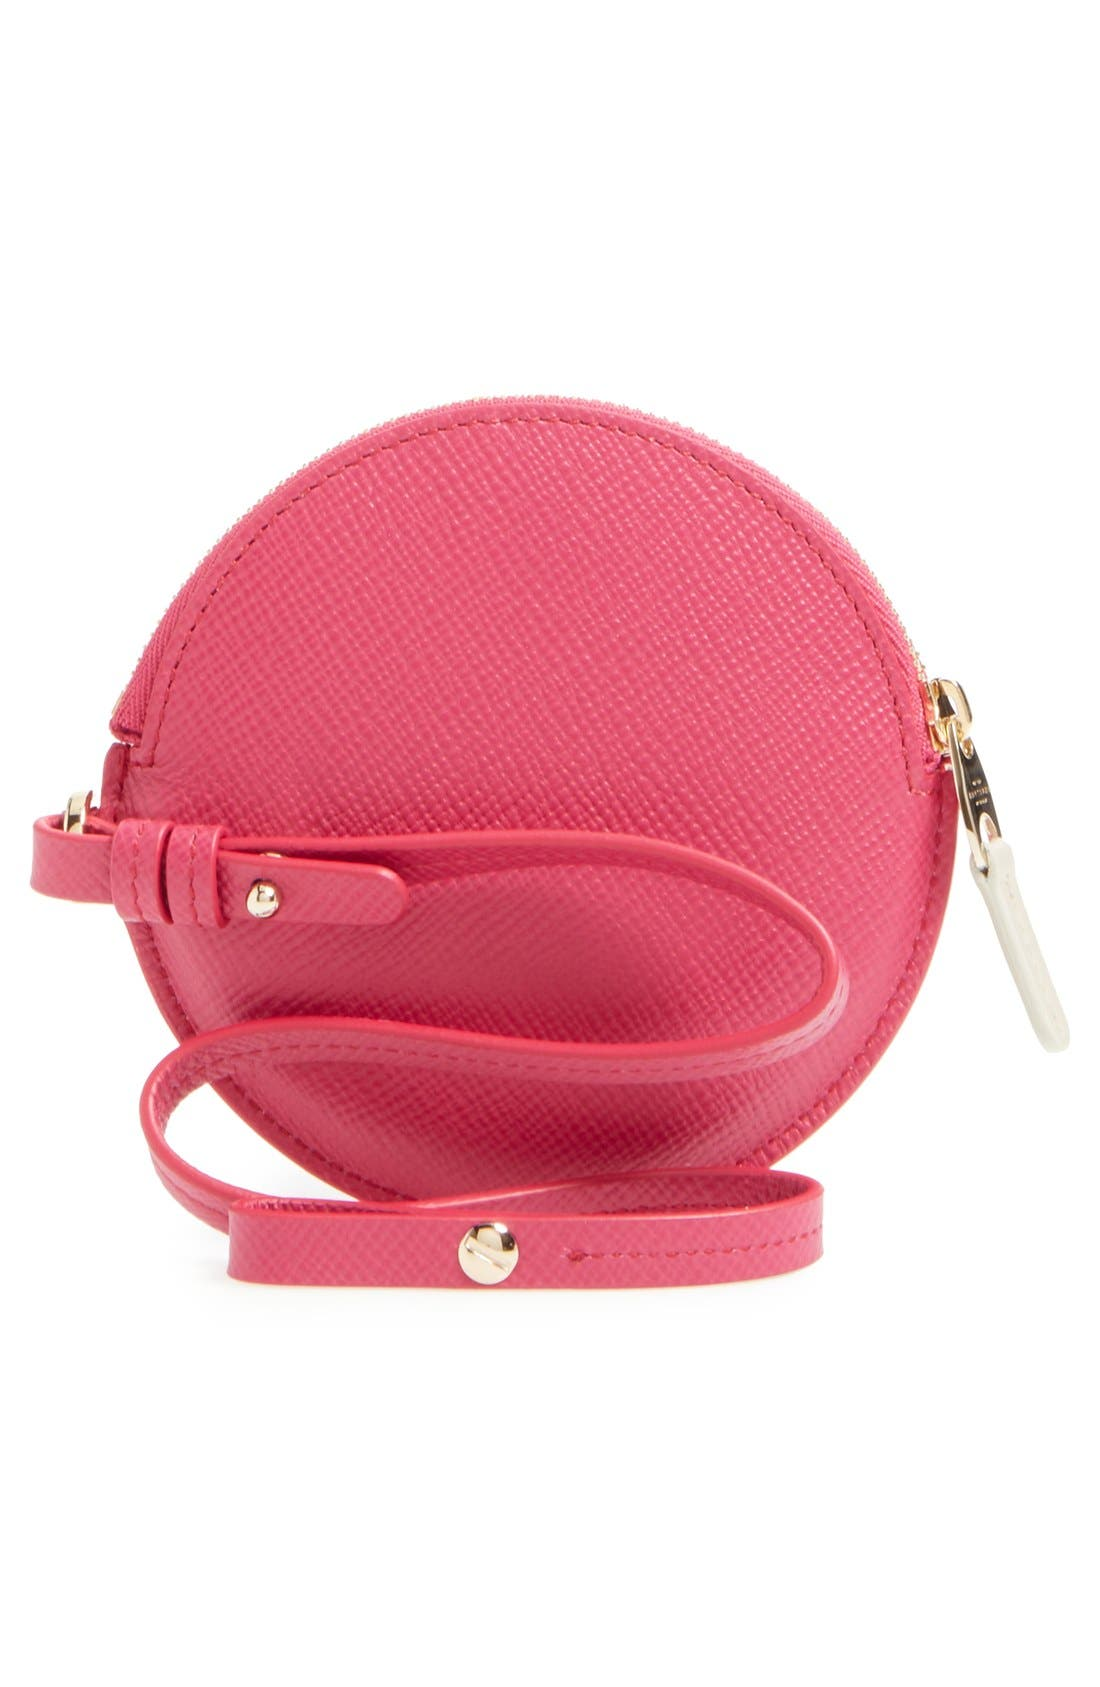 Circle Leather Coin Purse,                             Alternate thumbnail 4, color,                             Fuchsia